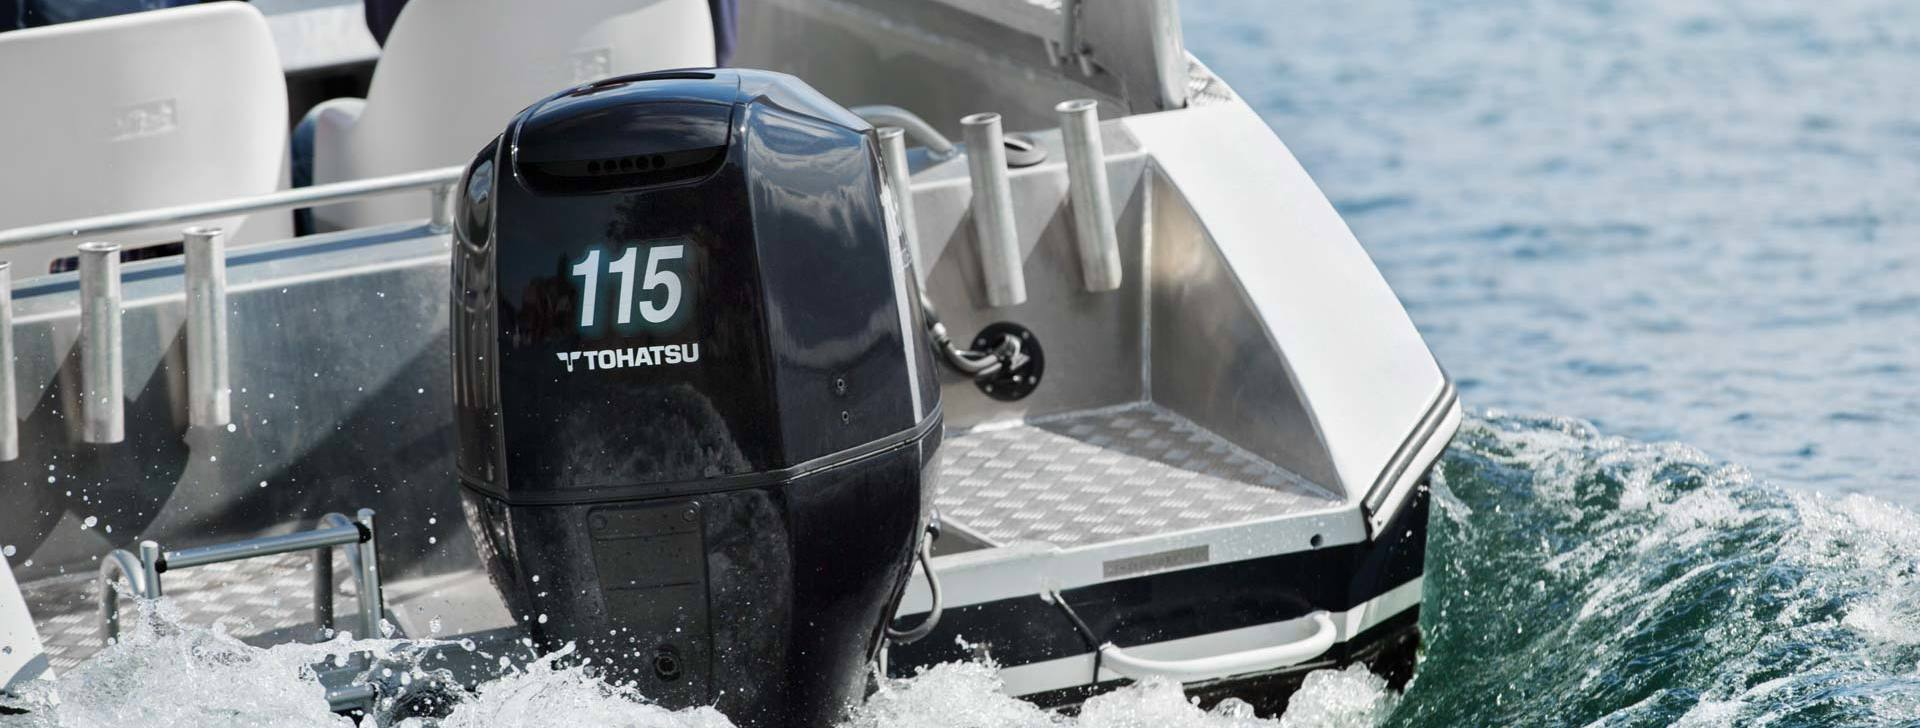 Tauhatsu Outboard Motors from Winsor Marine